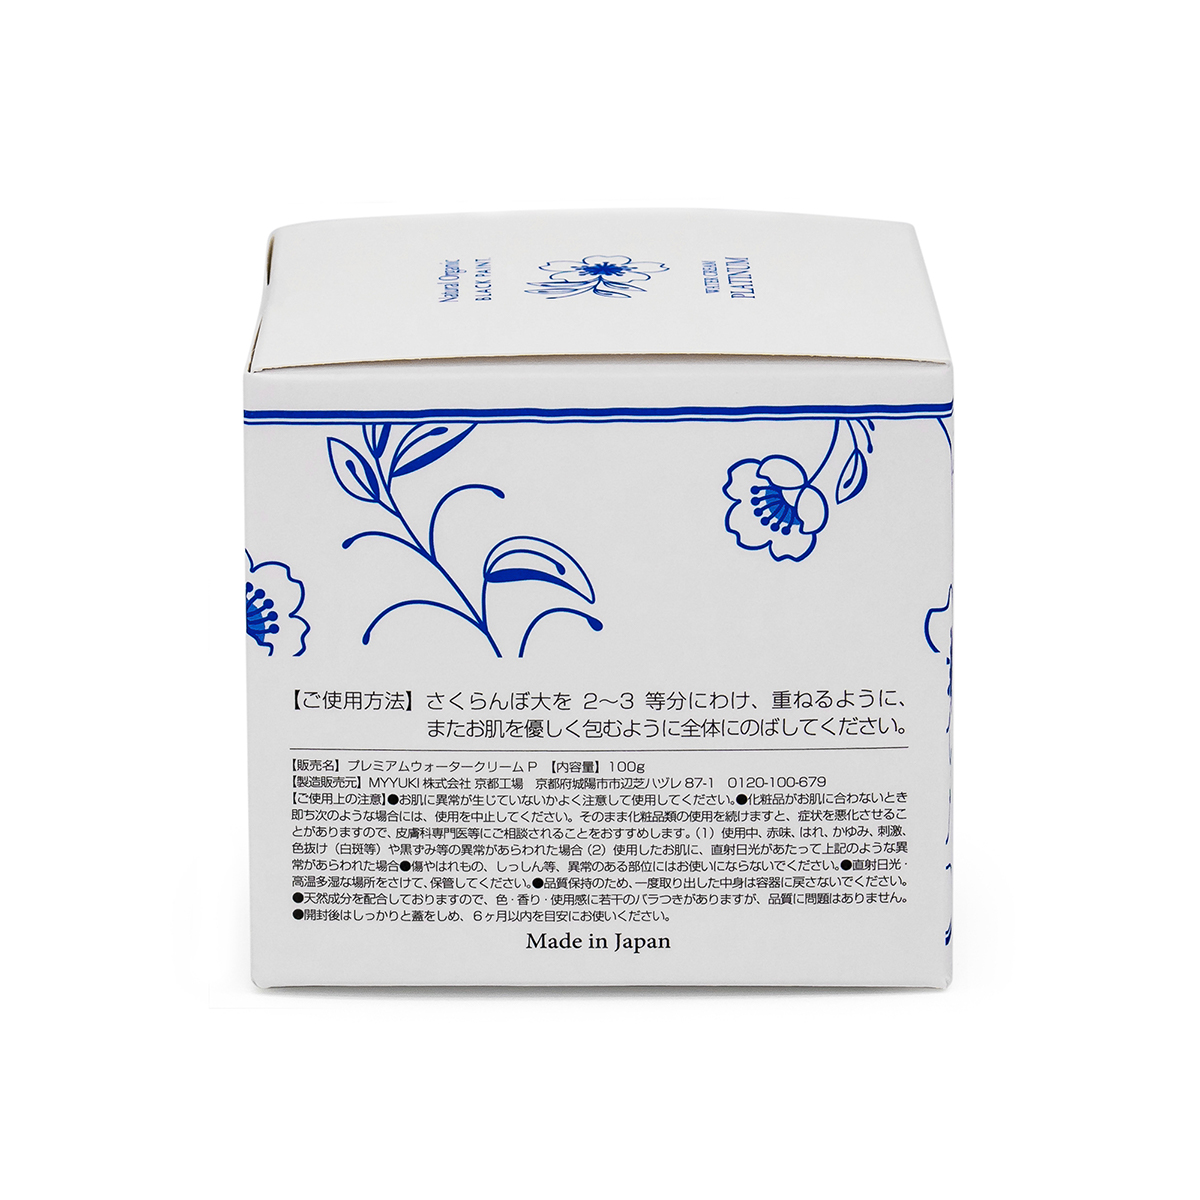 Water Cream Platinum 100g with Human Microbiome - box side 3